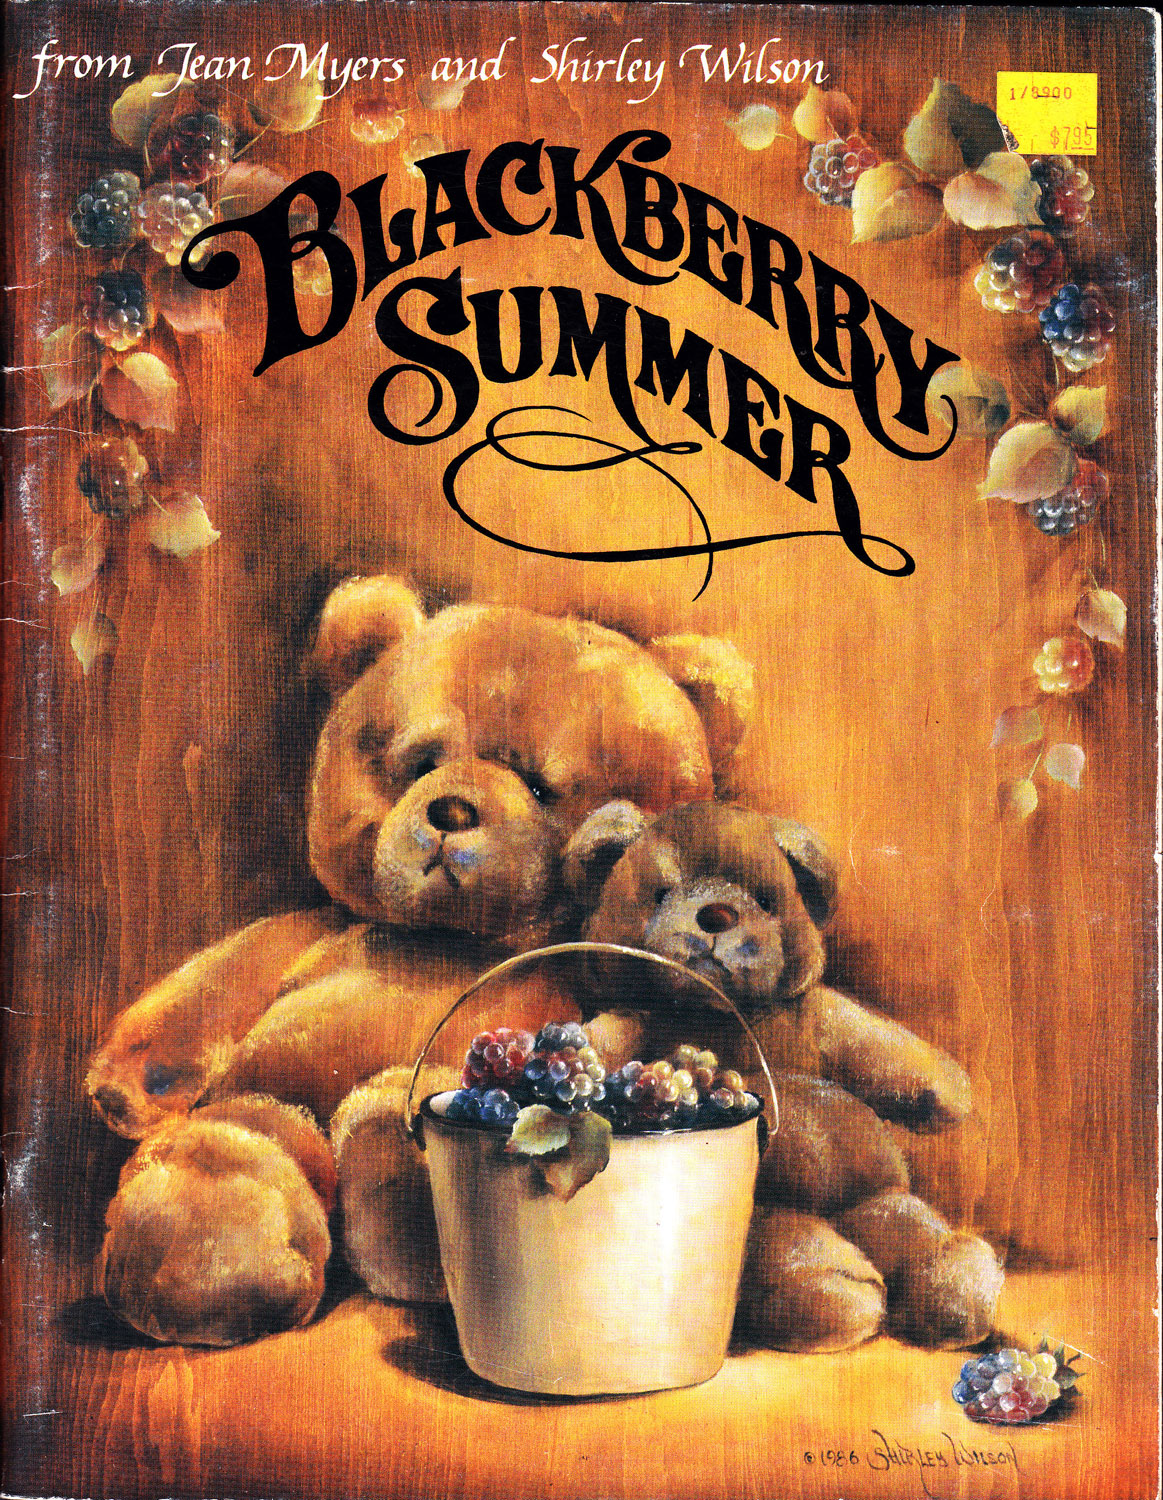 BlackBerry summer - Jean Myers & Shirley Wilson